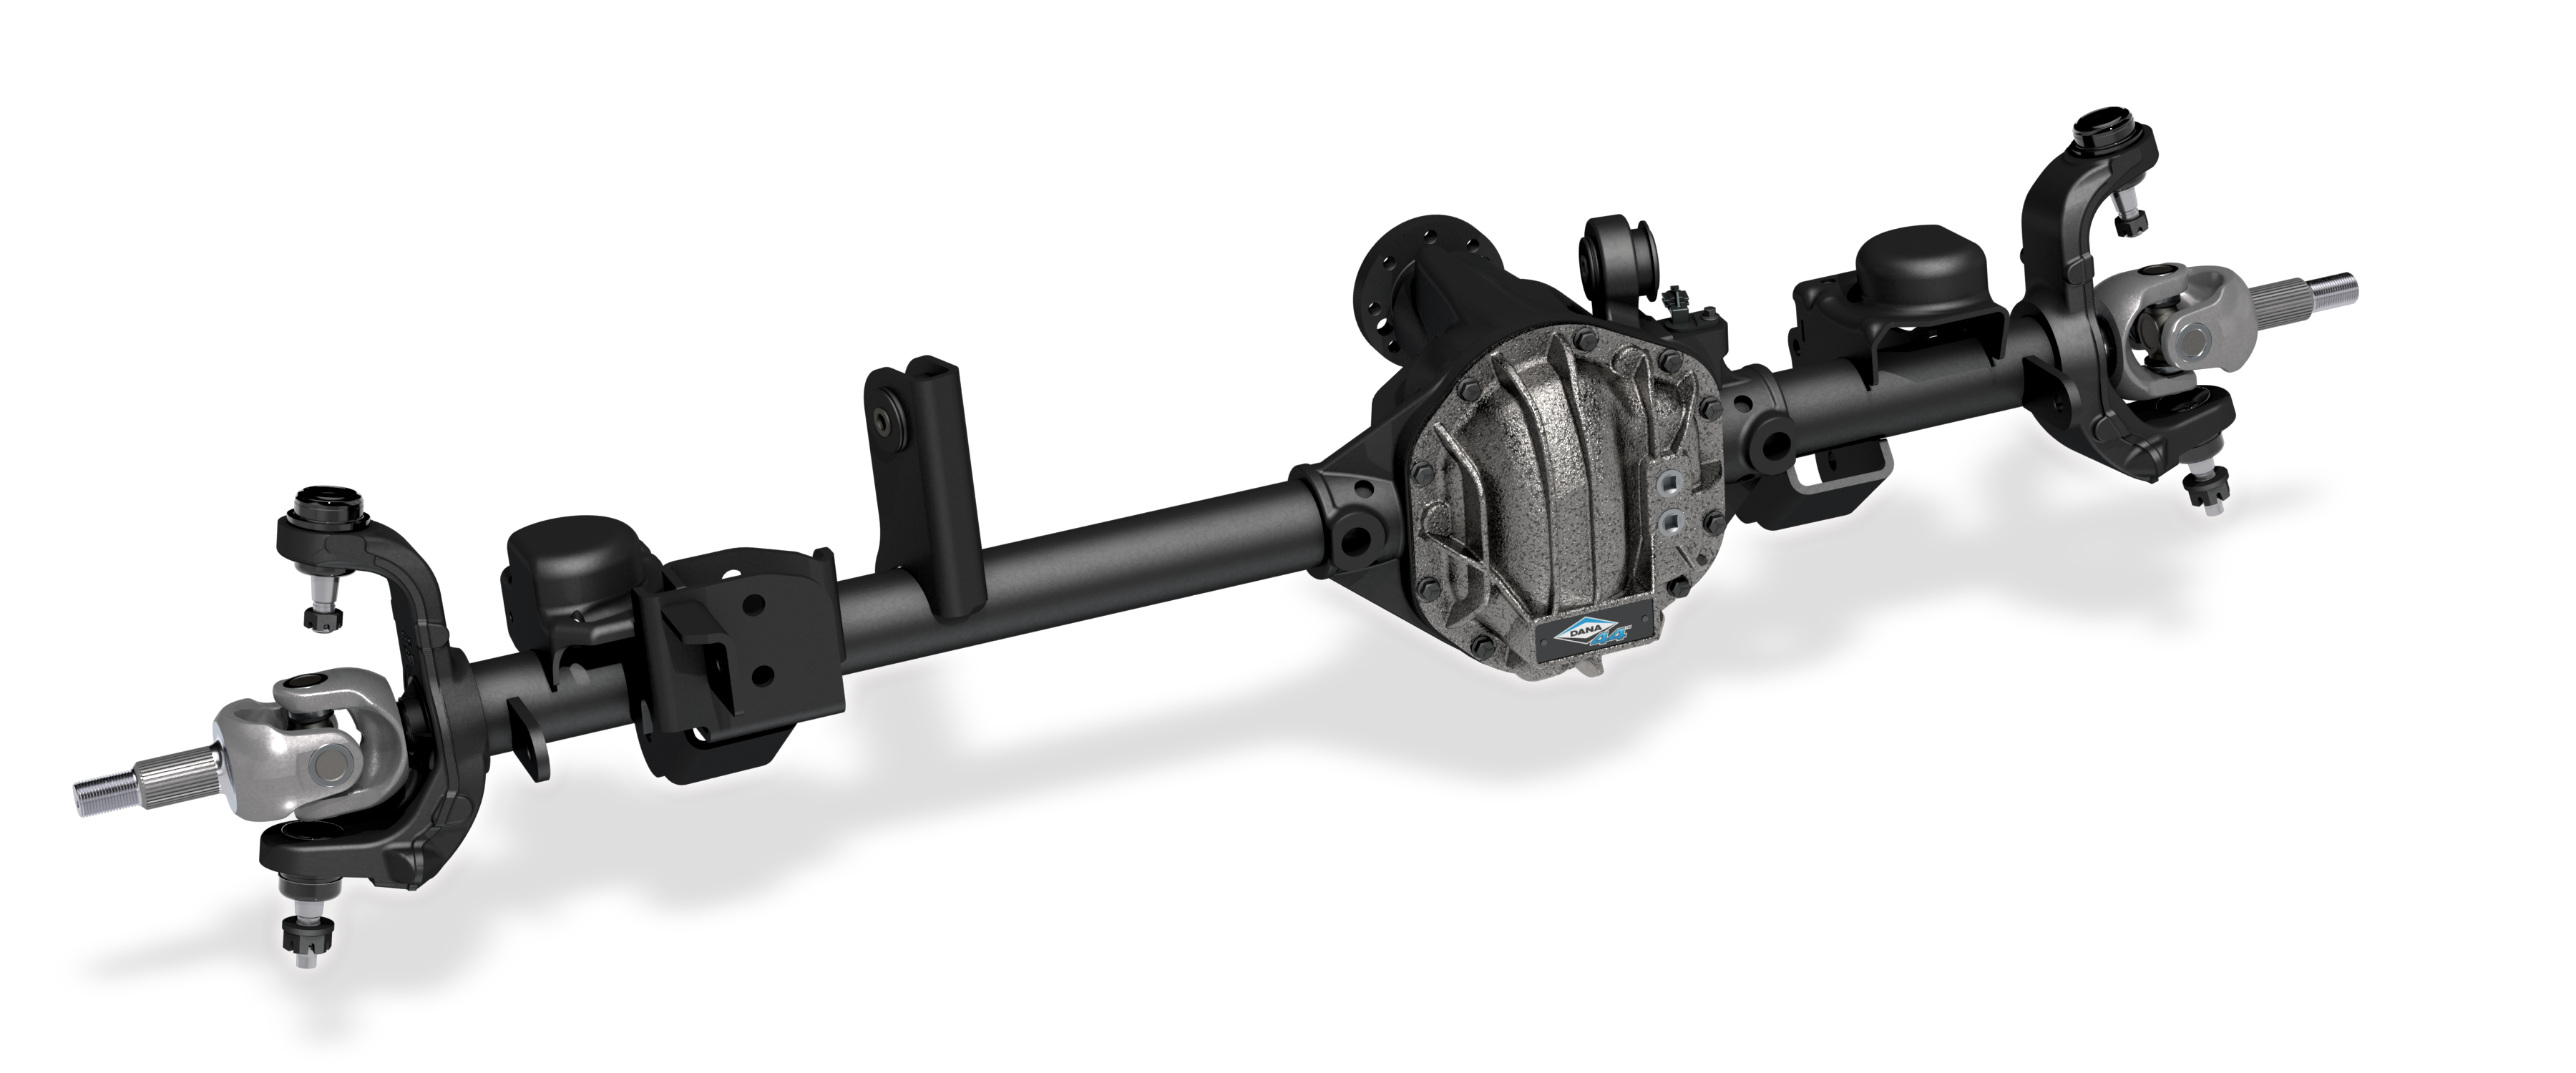 U44_Final_Front_side_shadow%2Bglow_NEW ultimate dana 44™ front axles for the jeep� wrangler� jk axle dana spicer ultimate 44 wiring harness kit at webbmarketing.co